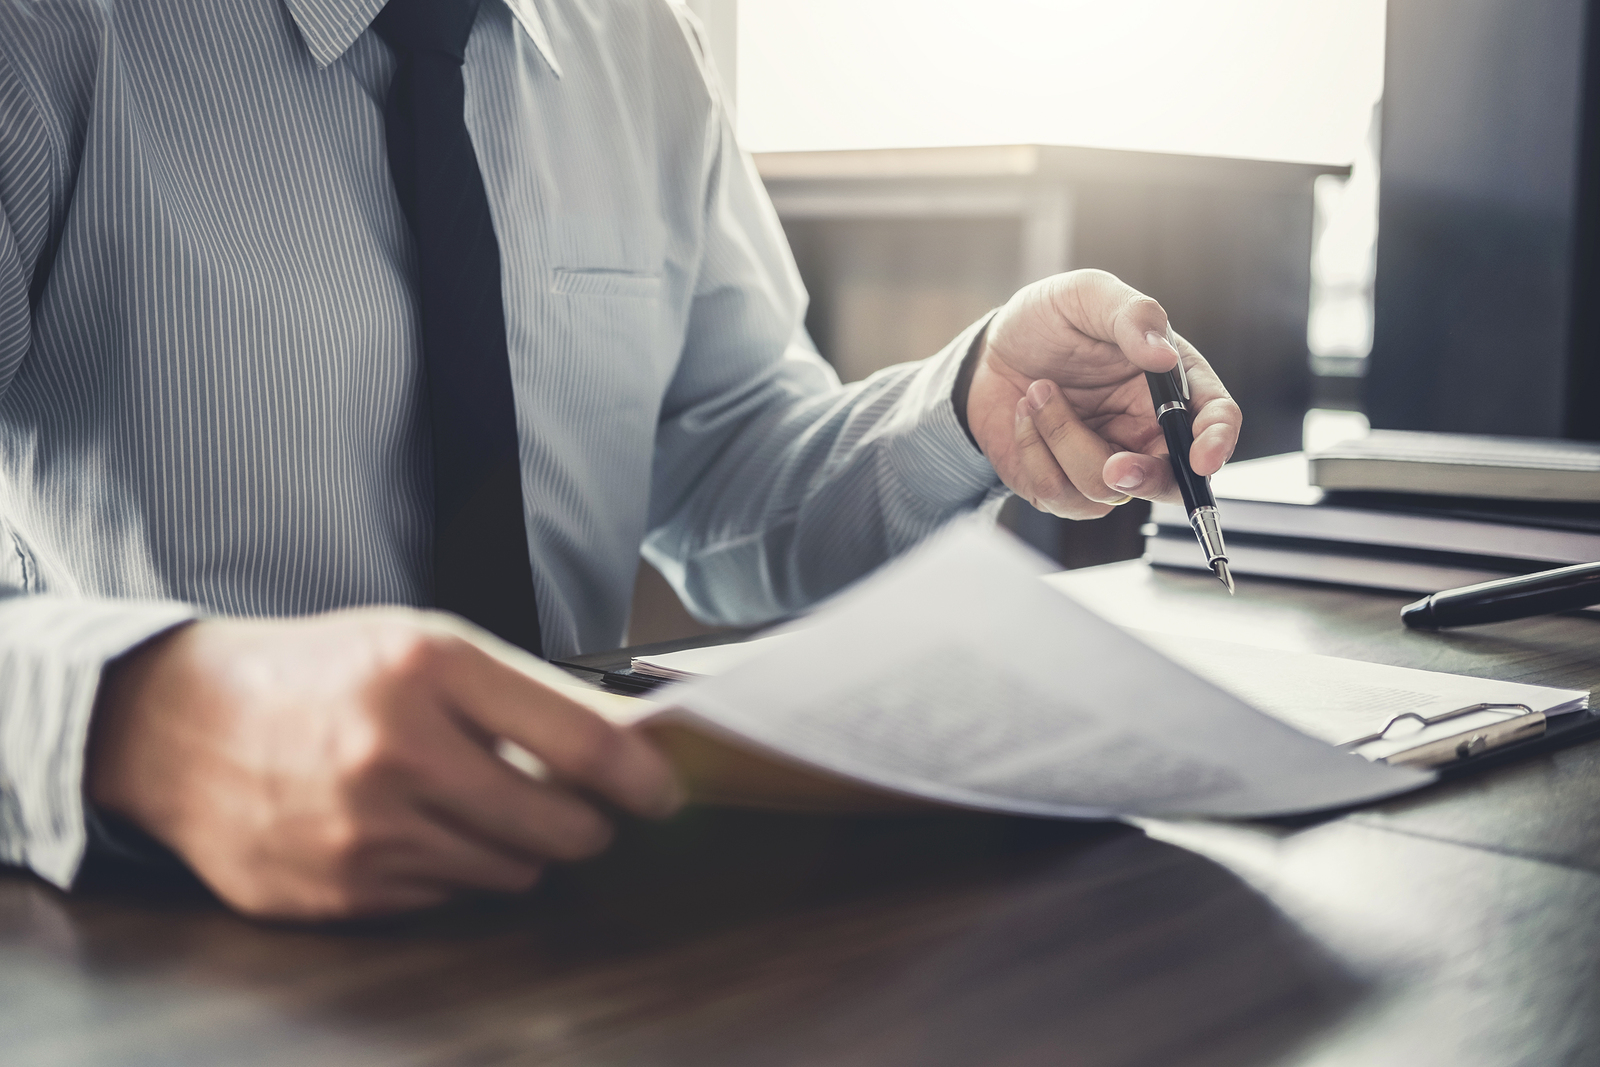 The only way to successfully file a Class Action lawsuit is to hire a Personal Injury attorney that is board-certified and has experience in trying these types of cases. ©BigStockPhoto